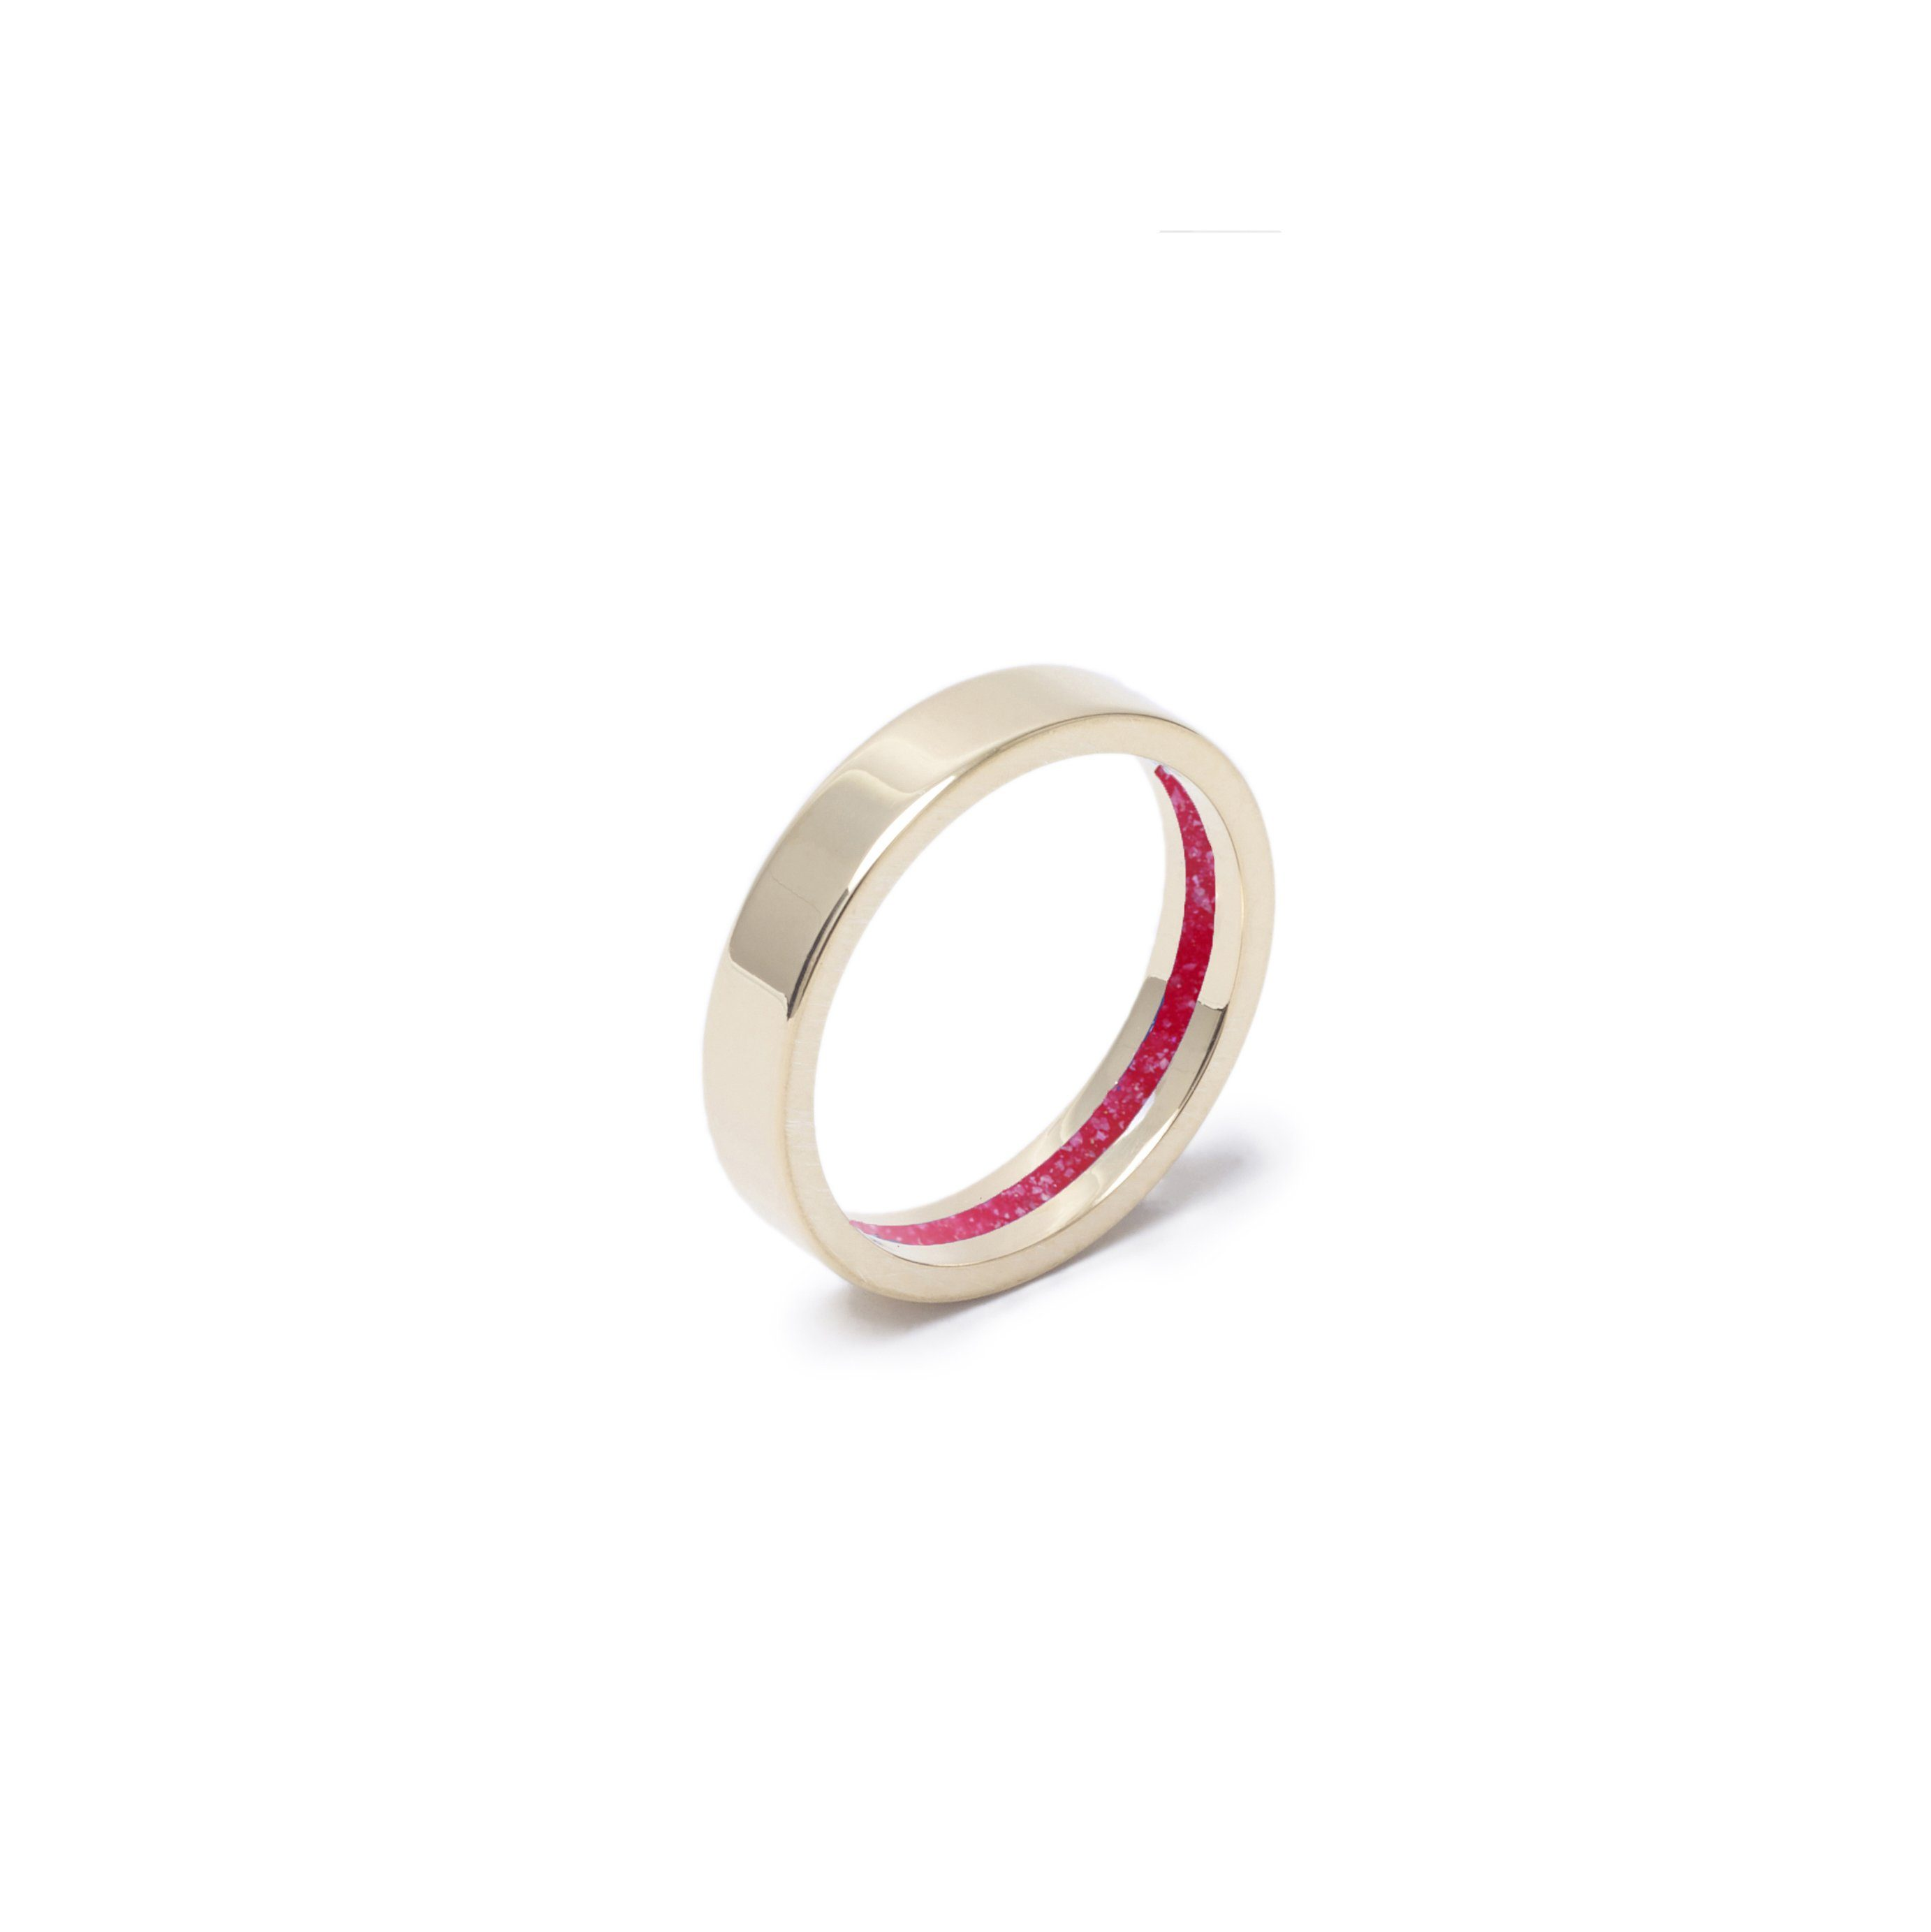 Everence Ring, 10k Yellow Gold everence.life 4mm Scarlet